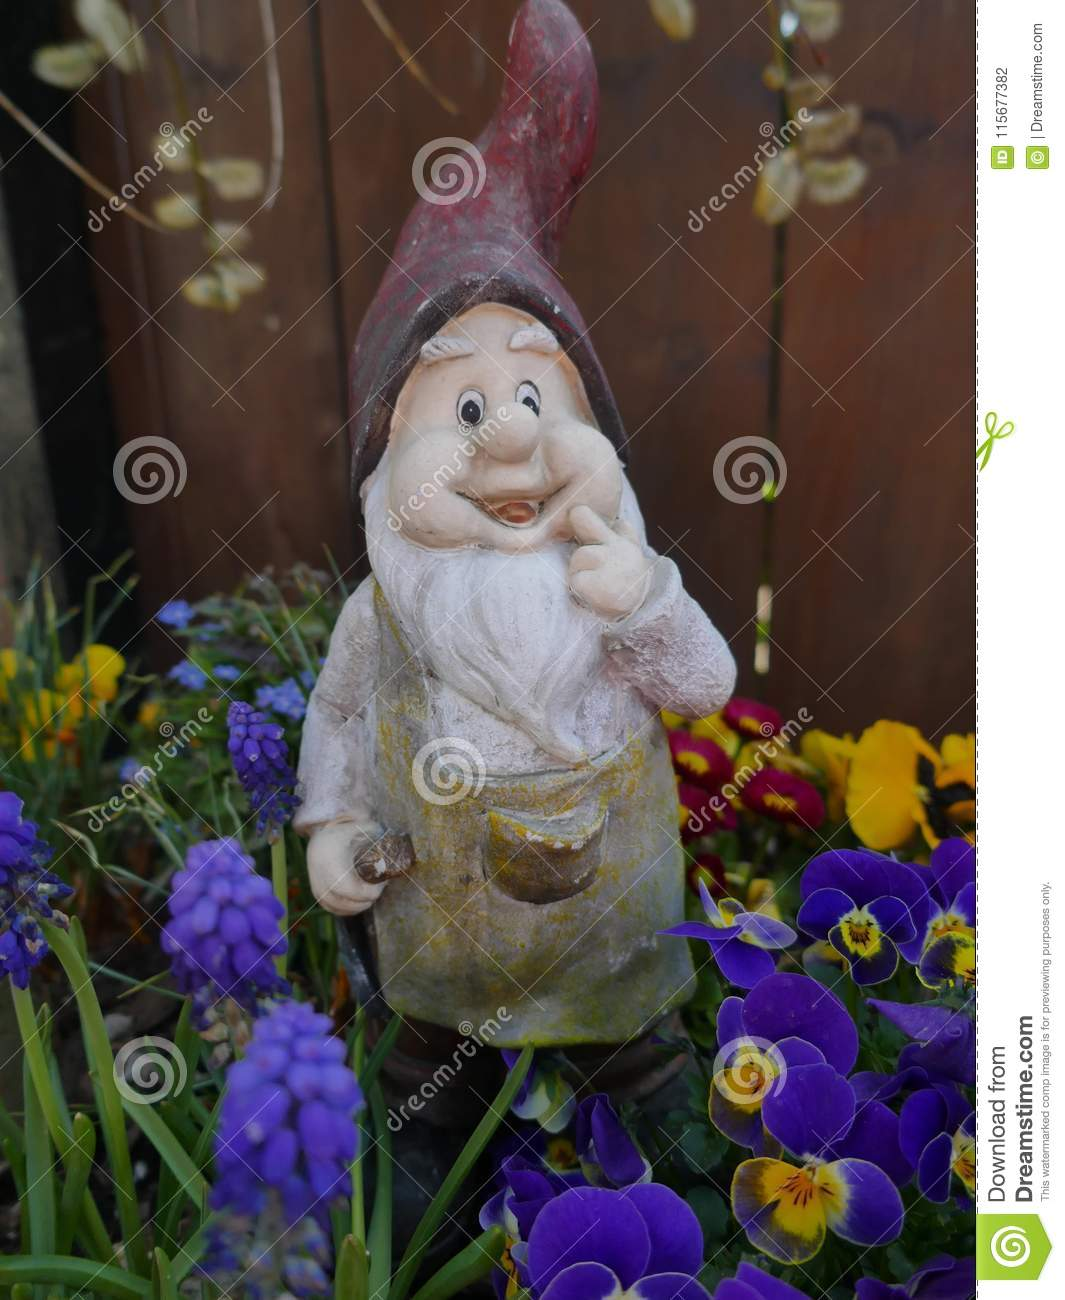 Charming Old Weathered Garden Gnome Stands In A Flowerbed